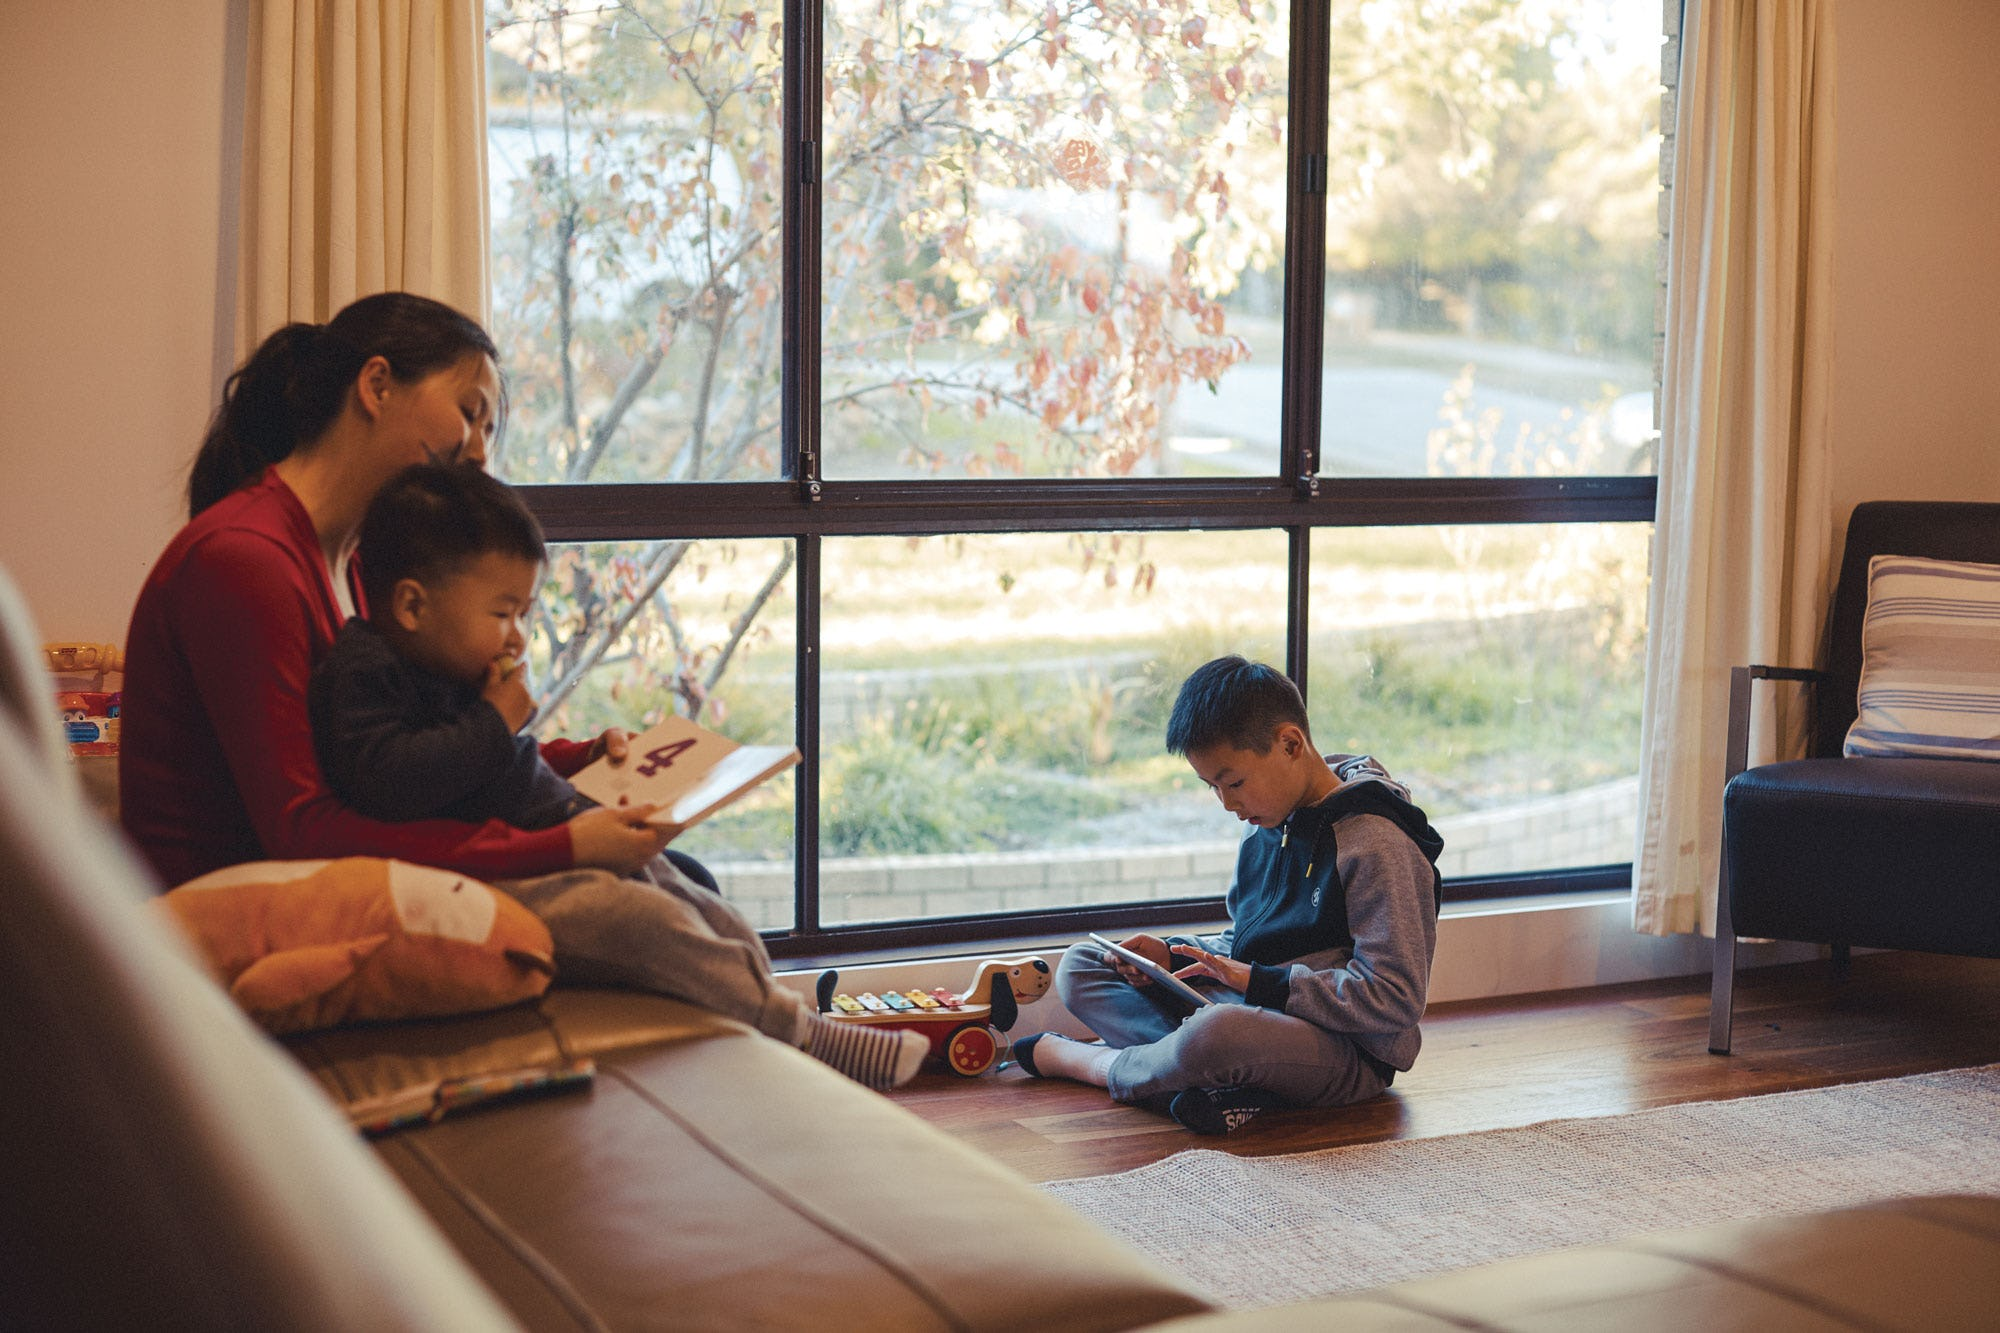 A family sitting in a living room accessing the Library's digital archives on a tablet